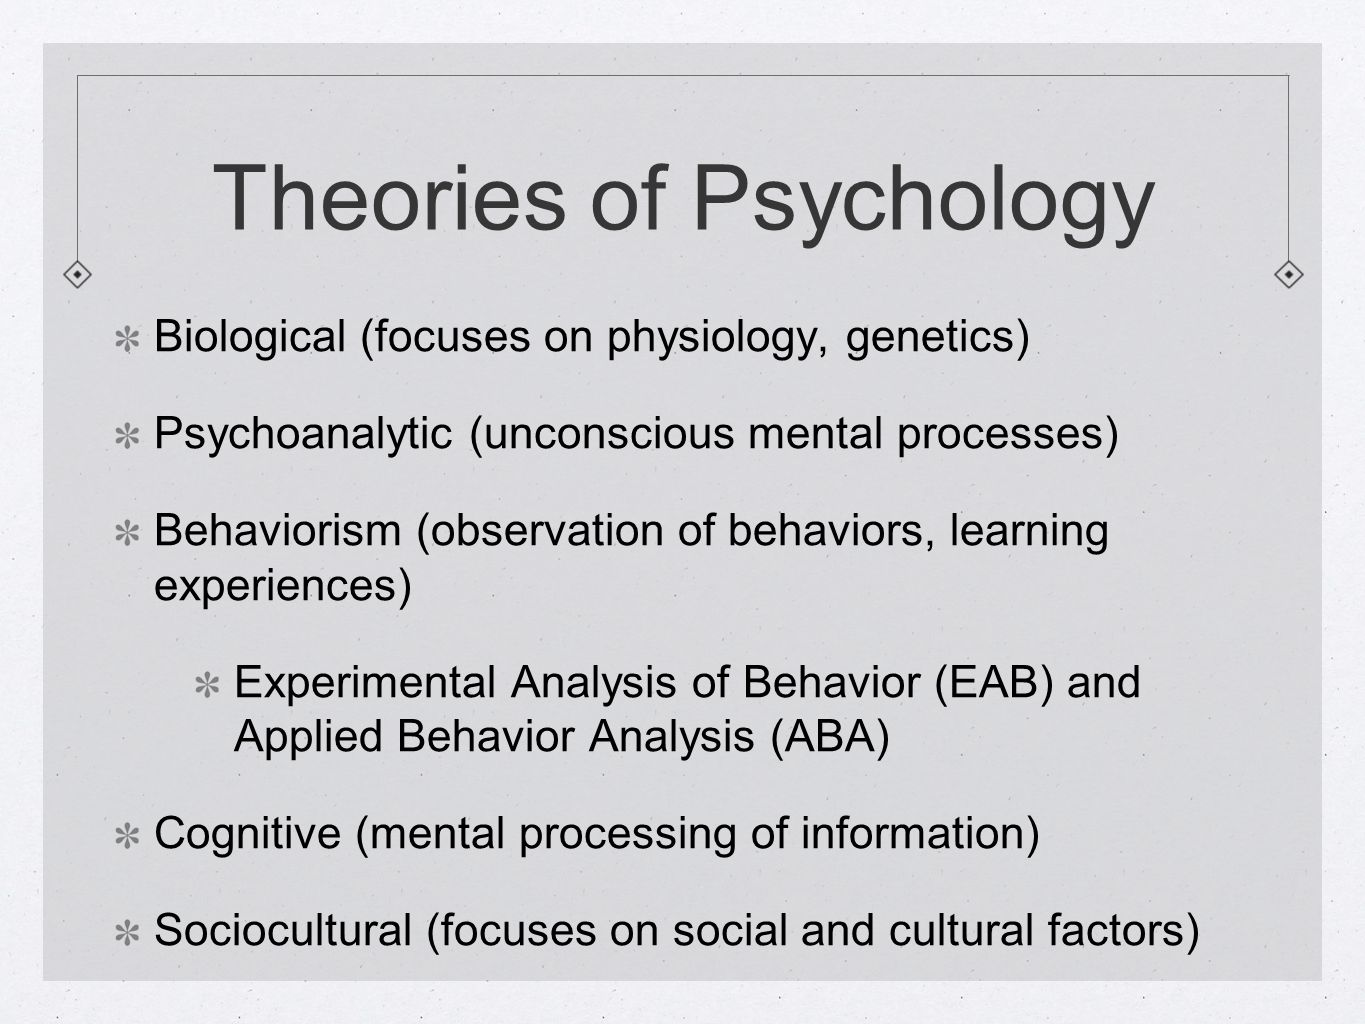 Theories of Psychology Biological (focuses on physiology, genetics) Psychoanalytic (unconscious mental processes) Behaviorism (observation of behaviors, learning experiences) Experimental Analysis of Behavior (EAB) and Applied Behavior Analysis (ABA) Cognitive (mental processing of information) Sociocultural (focuses on social and cultural factors)